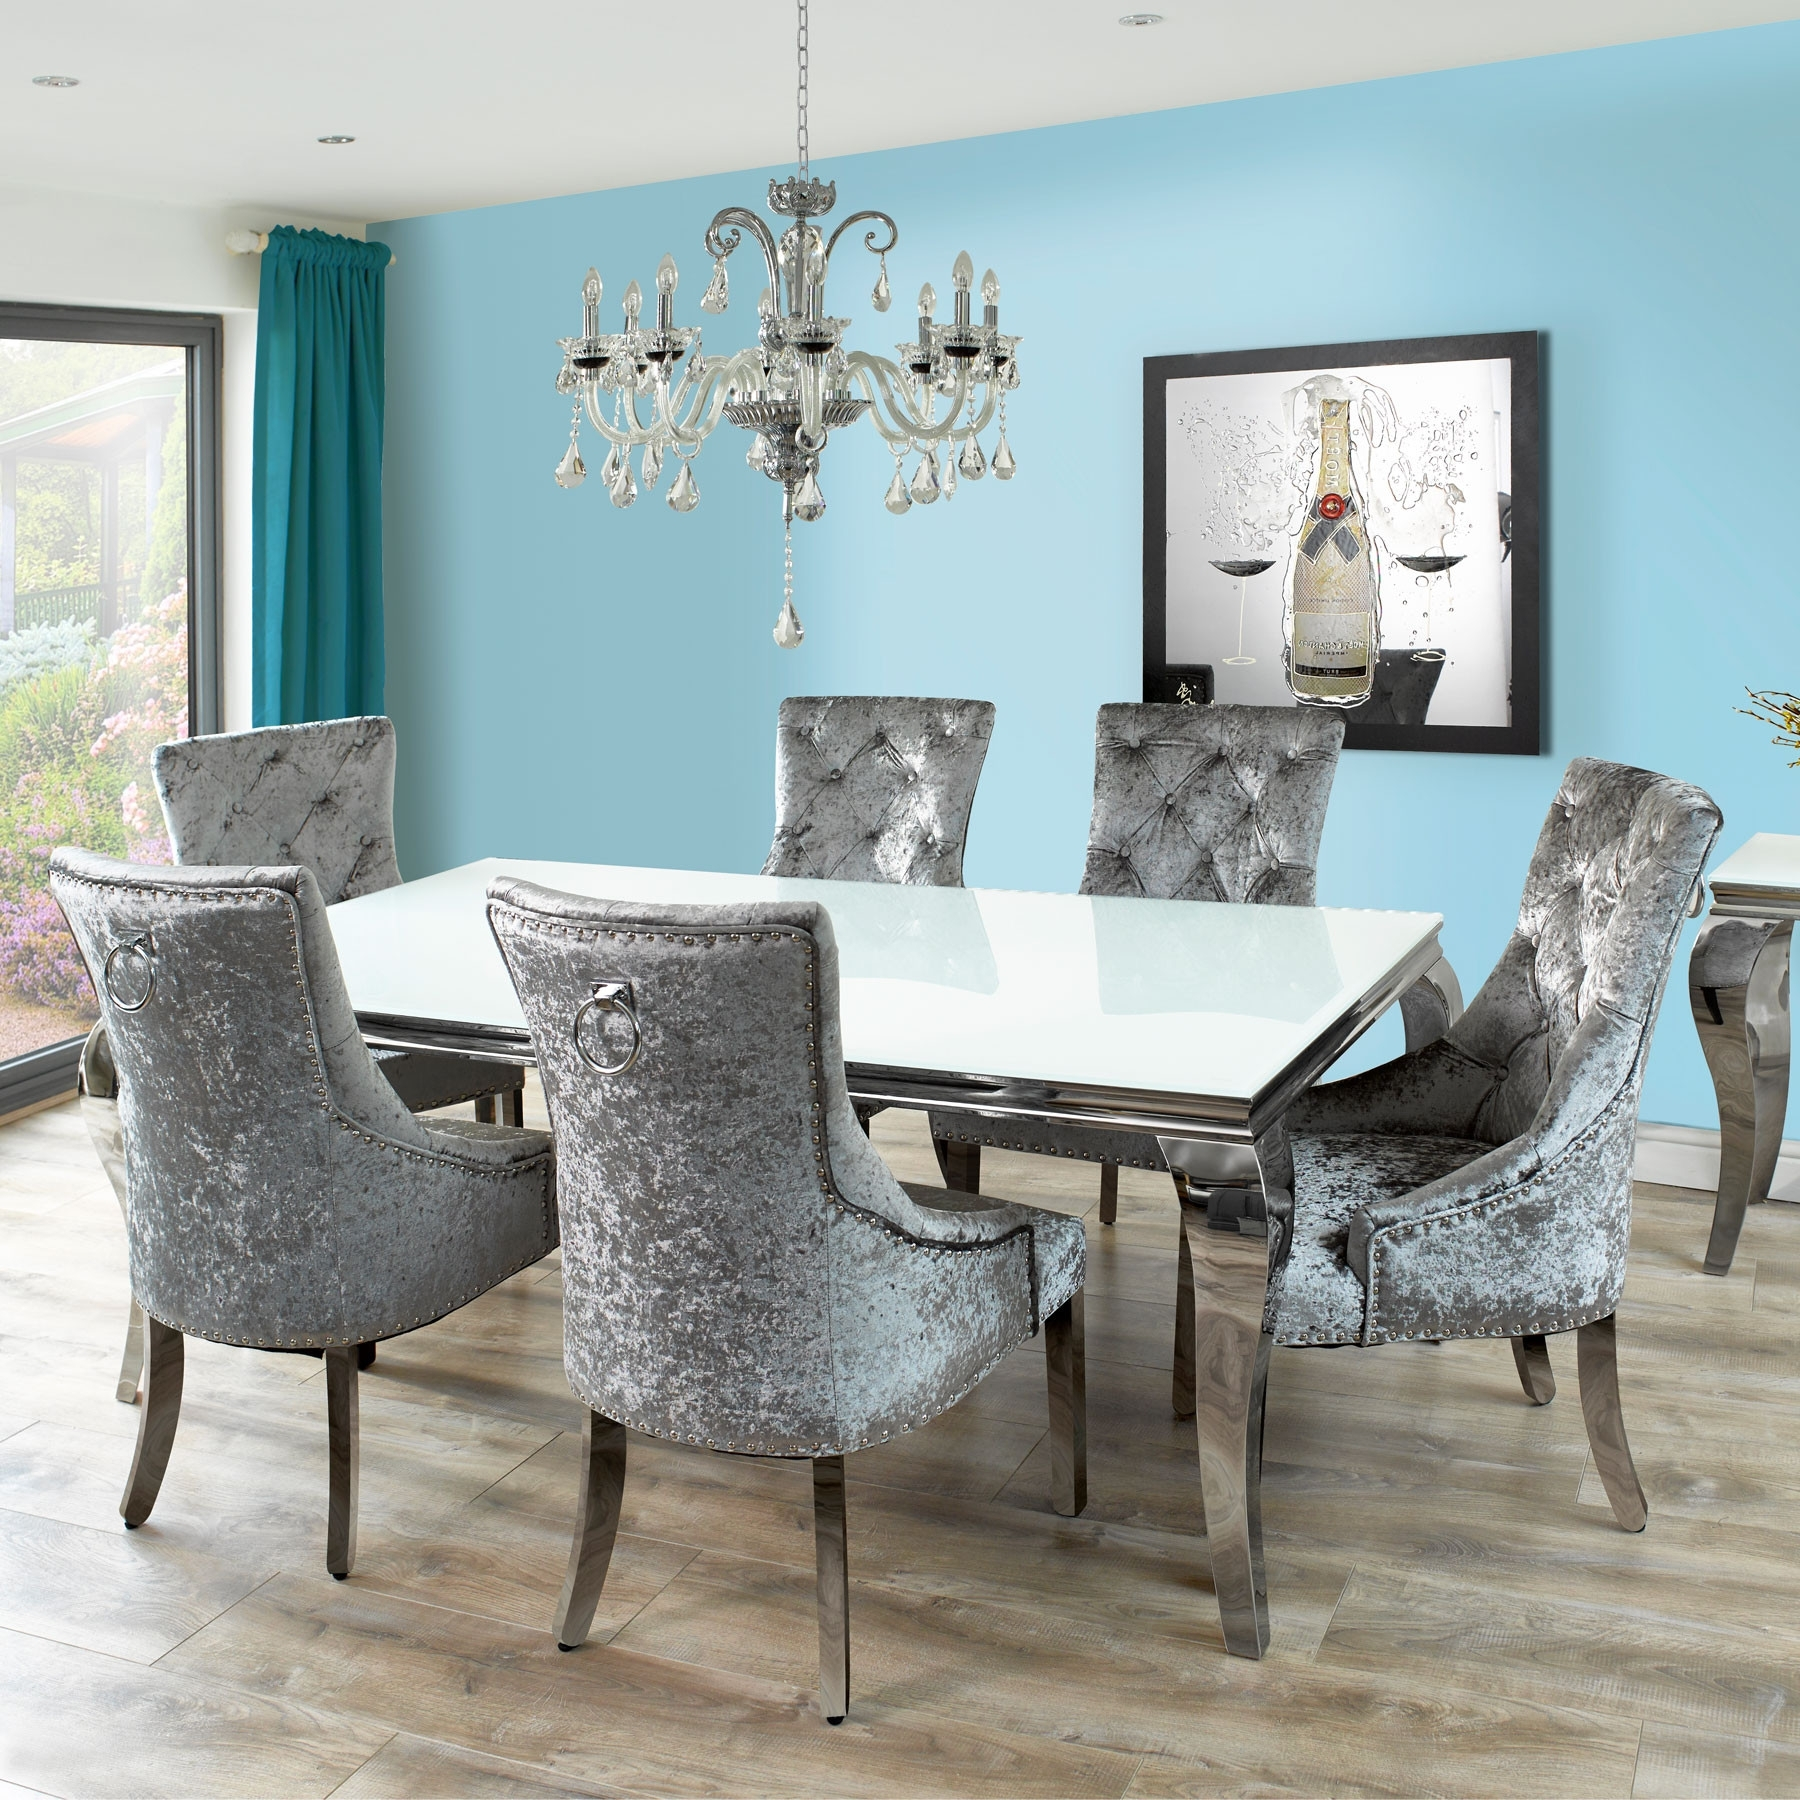 Fadenza Small White Glass Dining Table & 4 Silver Chairs With Throughout Recent Chrome Dining Tables And Chairs (View 3 of 25)